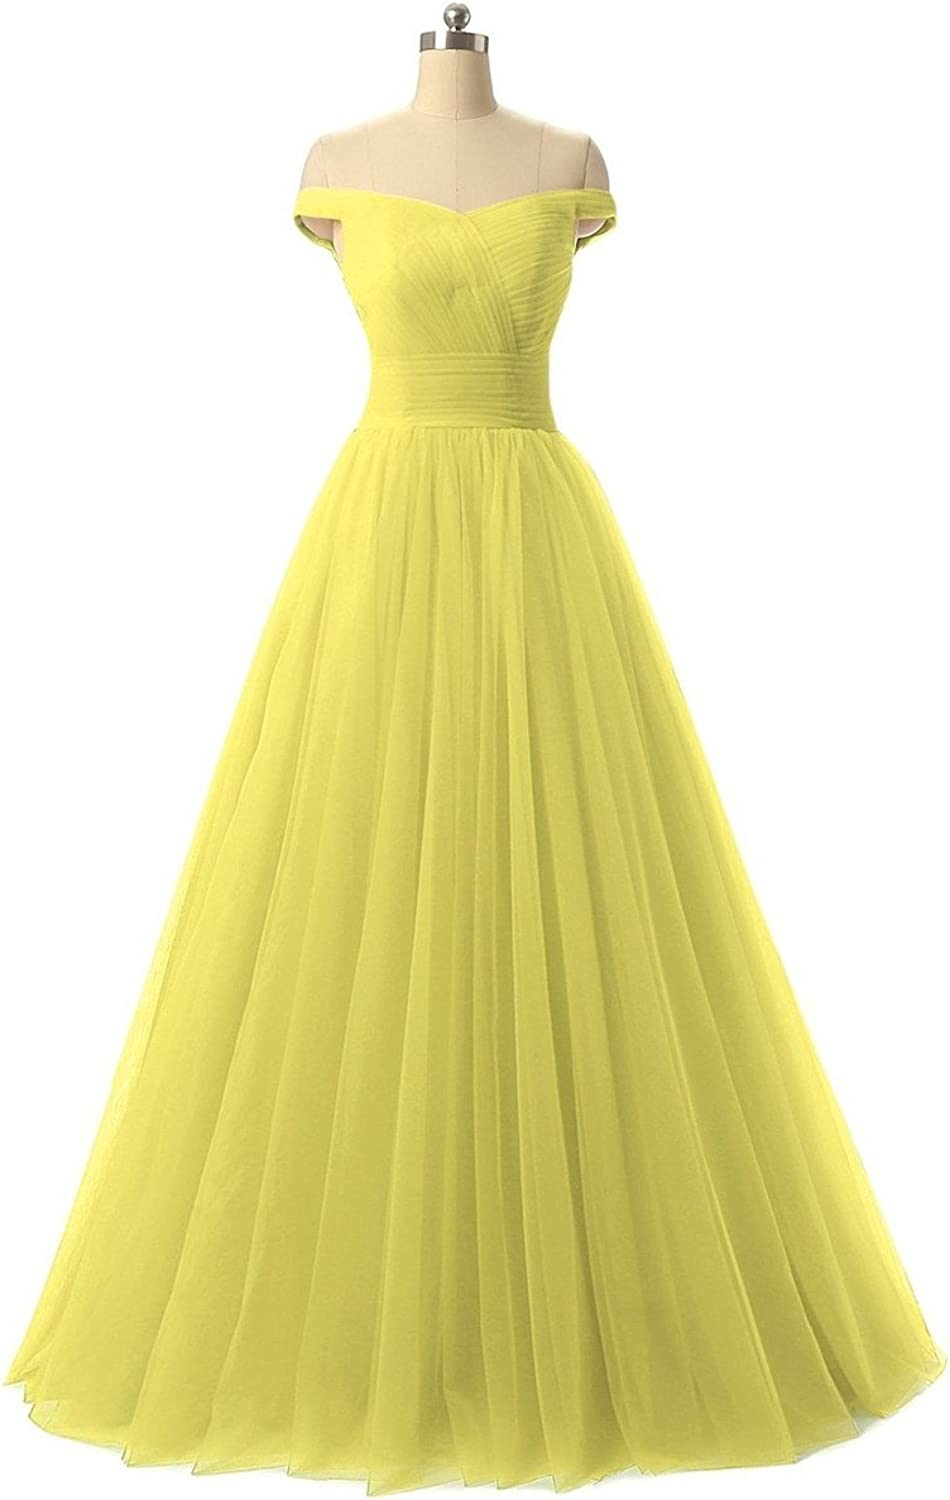 JudyBridal Women Aline Tulle Prom Formal Evening Homecoming Dress Ball Gown